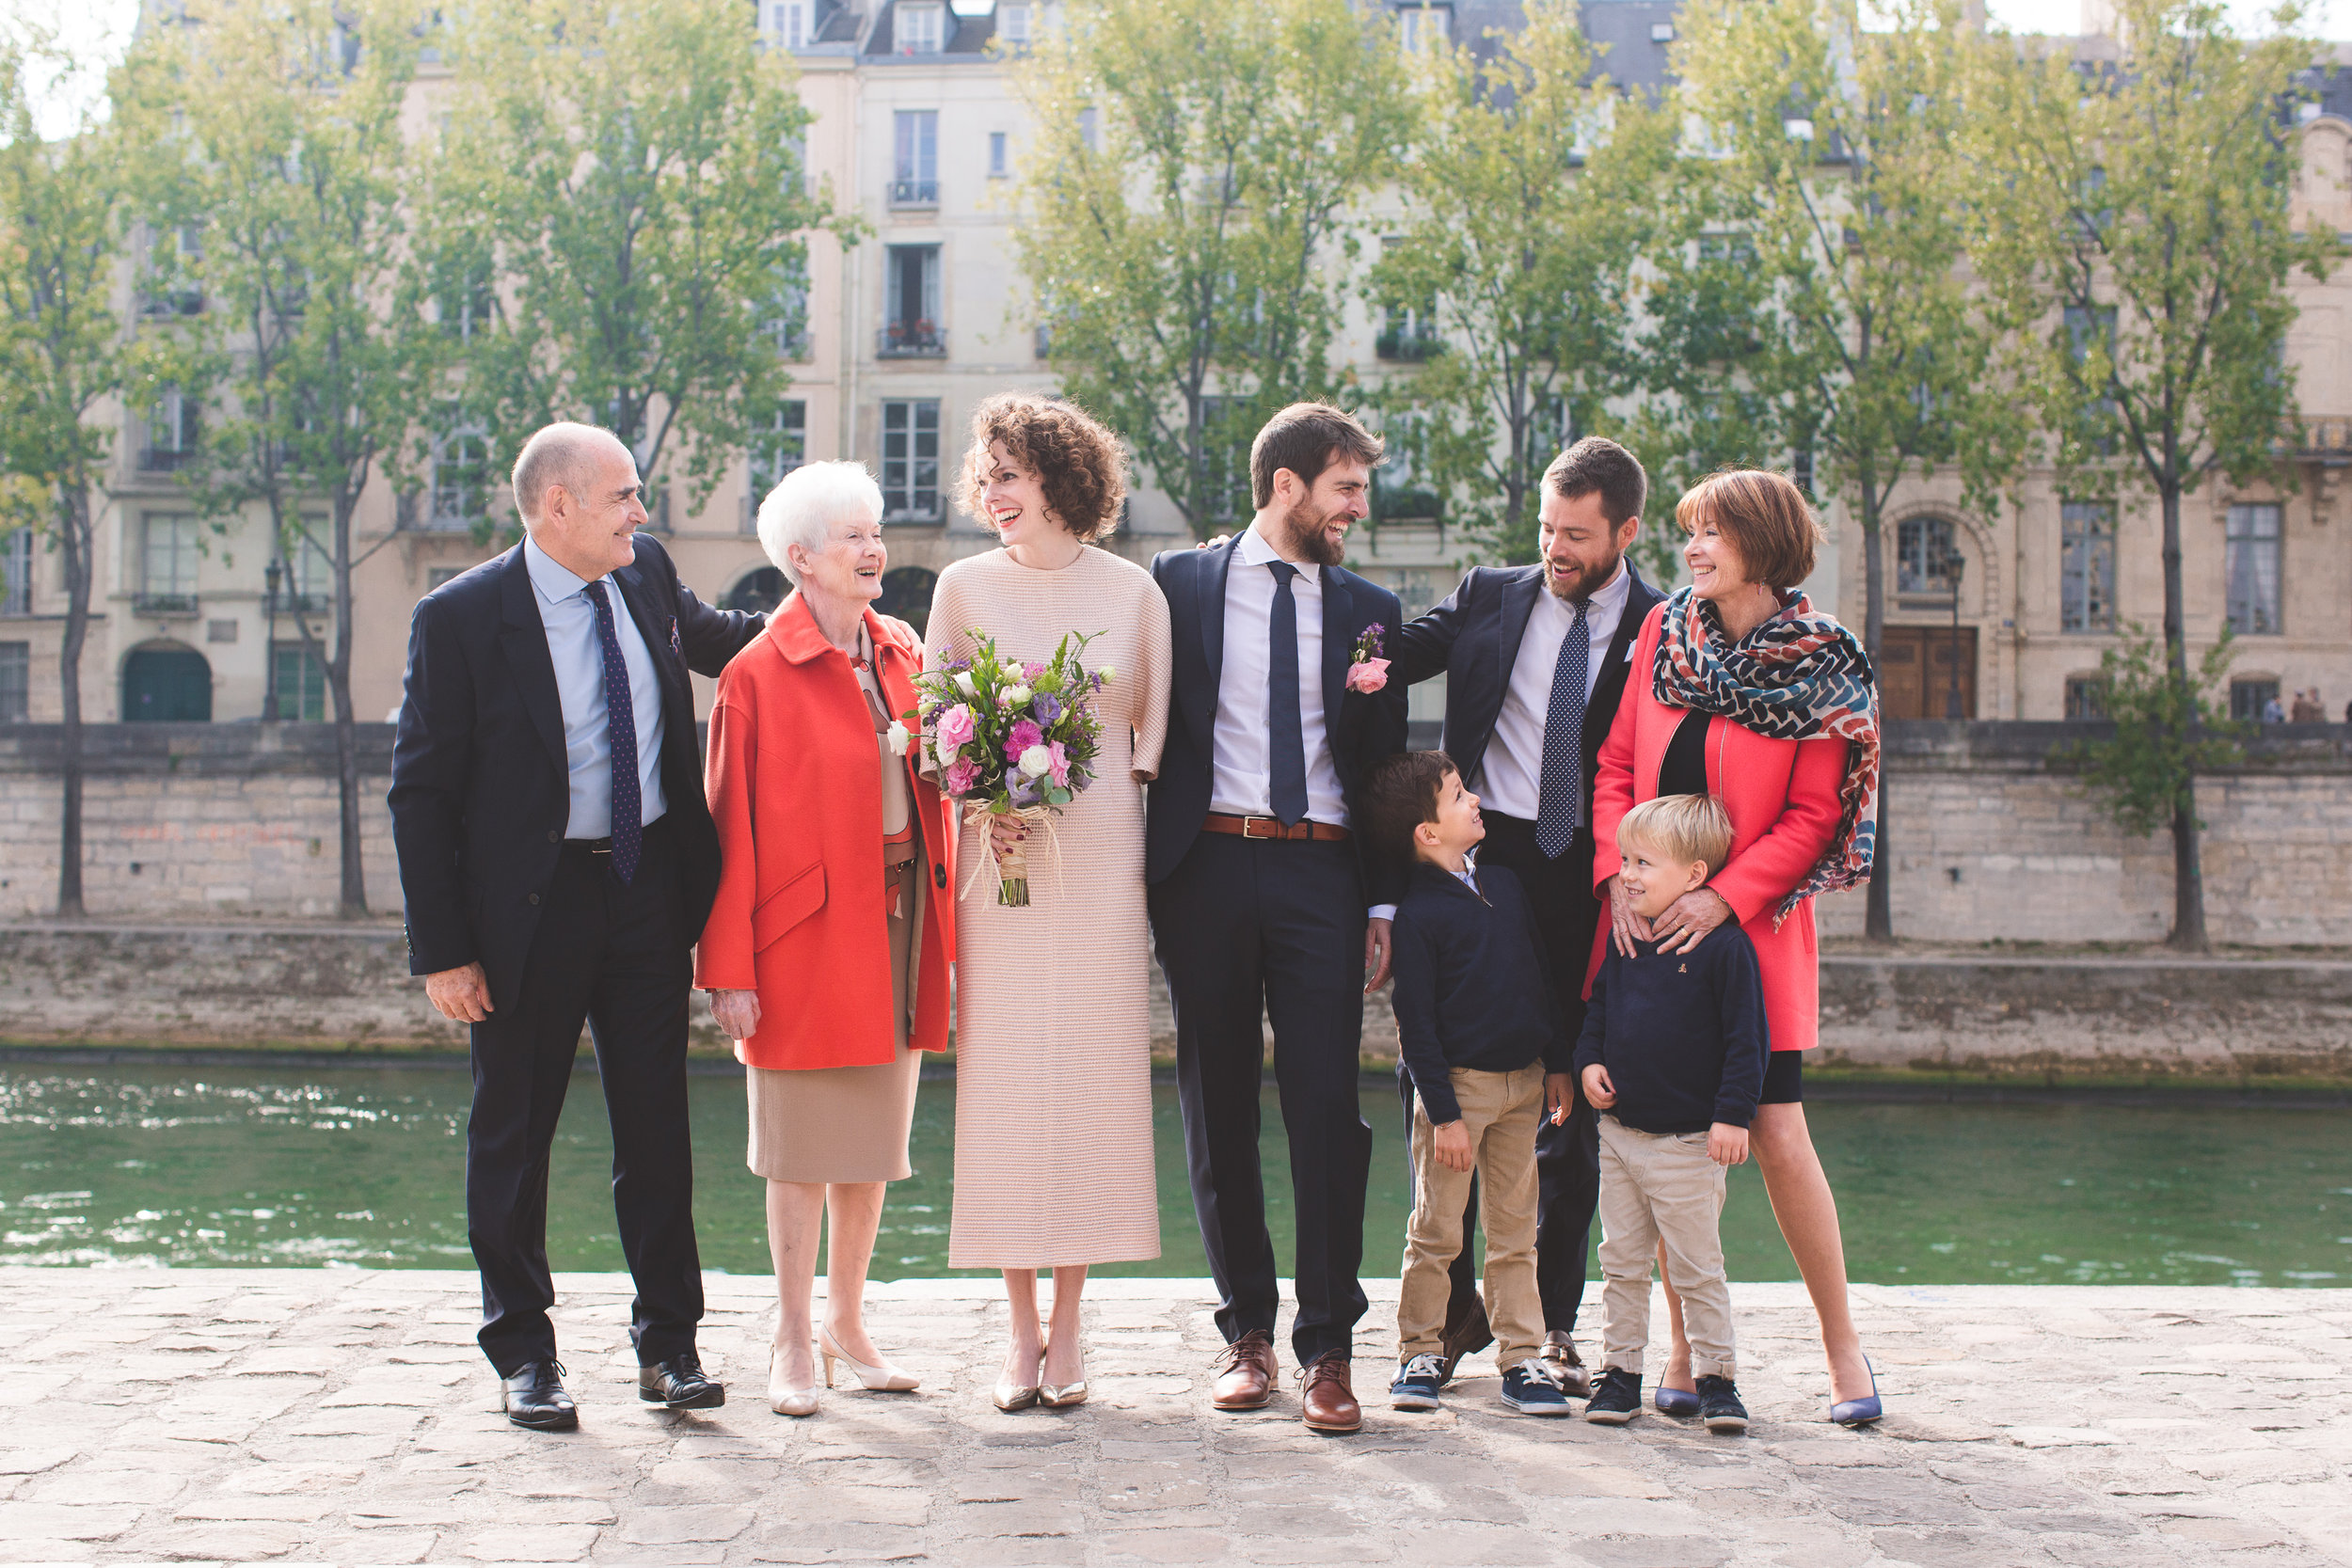 Emma&Nico_WeddingParis_by_UlaBlocksage-189.jpg